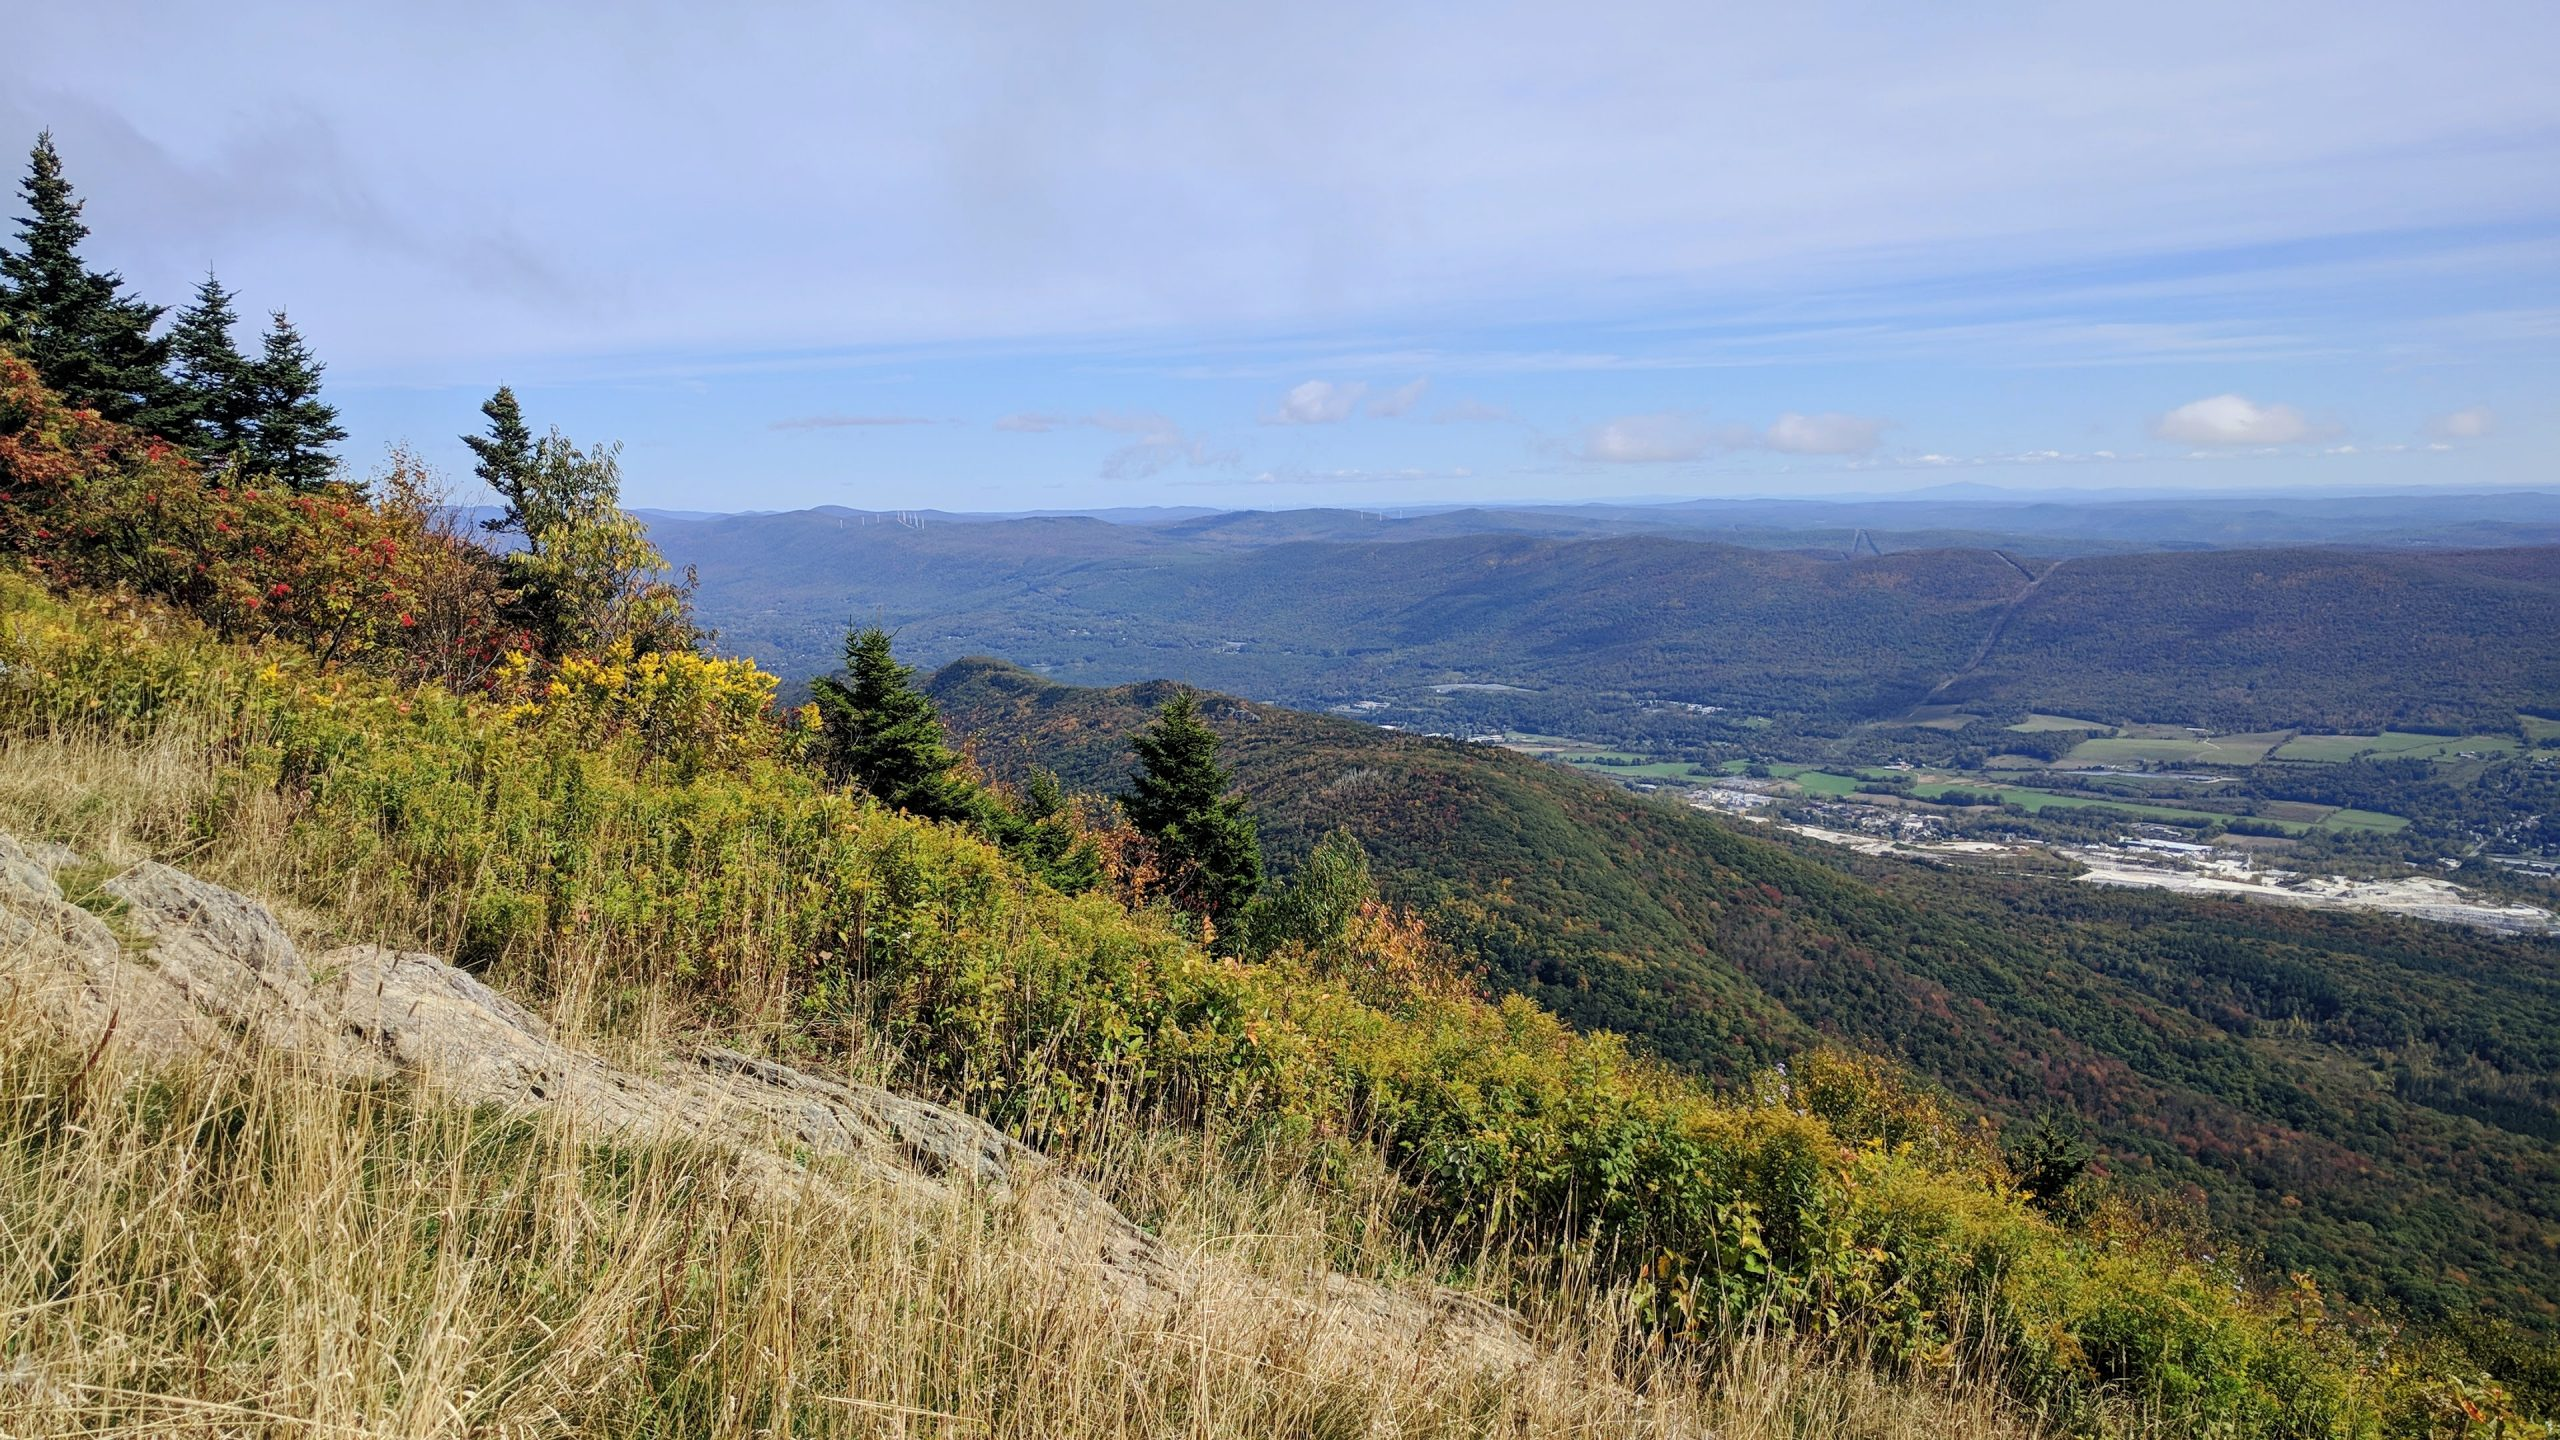 view from Mt Greylock in the early fall - blue skies with wispy clouds, yellow tall grass, trees, and forests